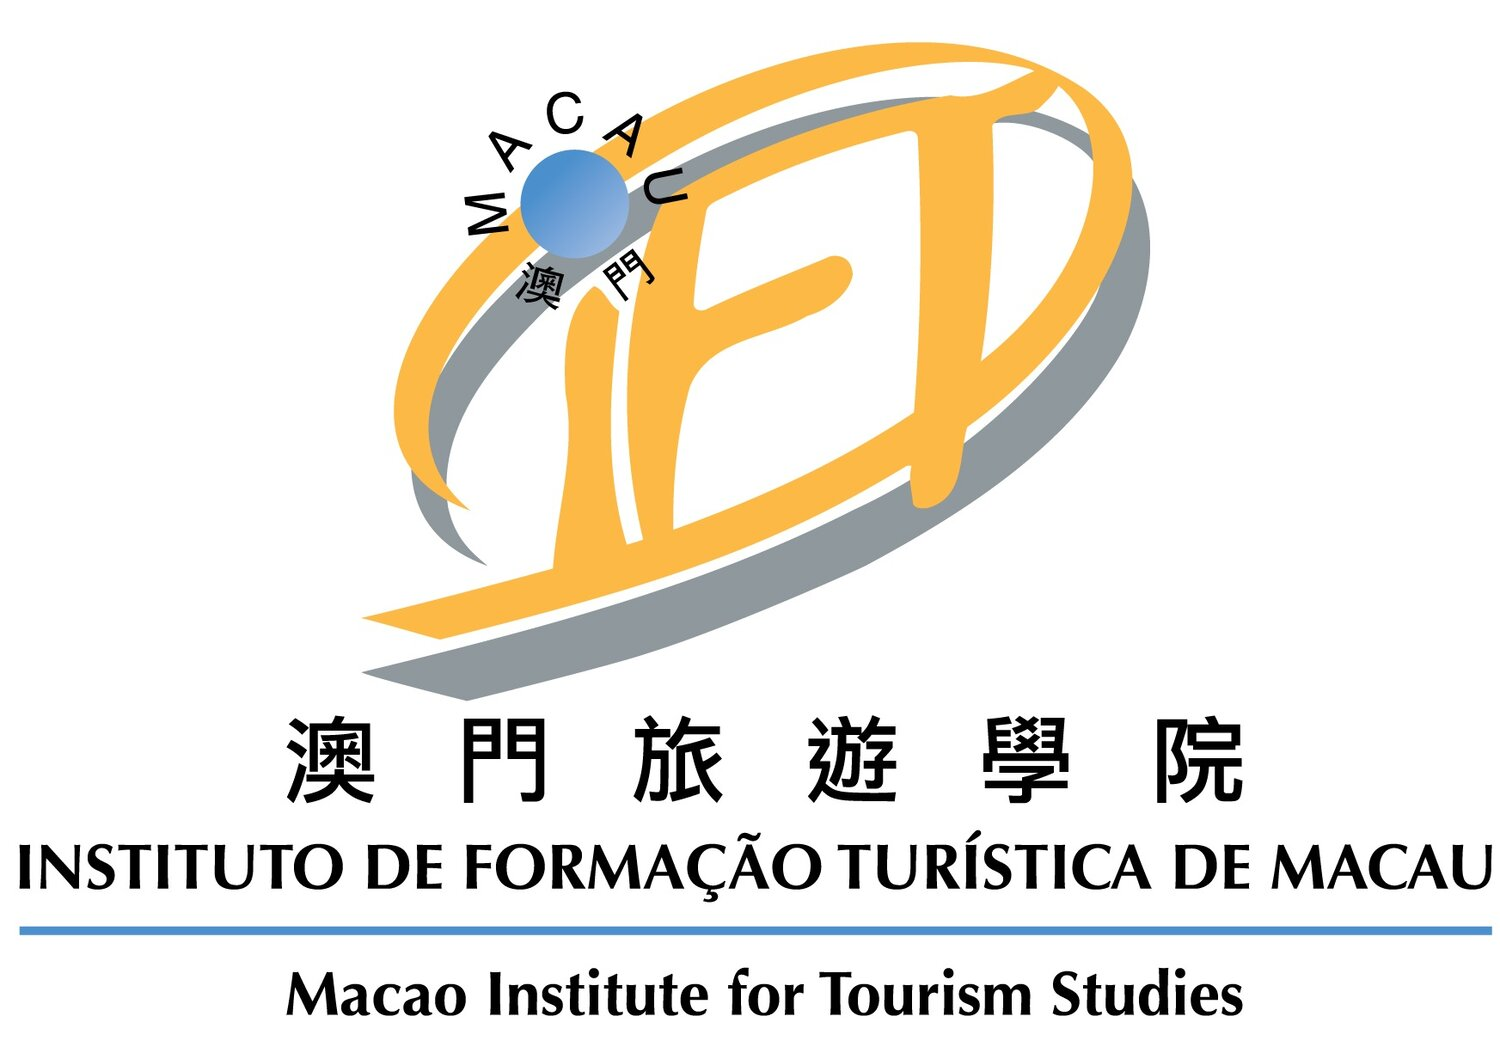 IFT Tourism Research Centre